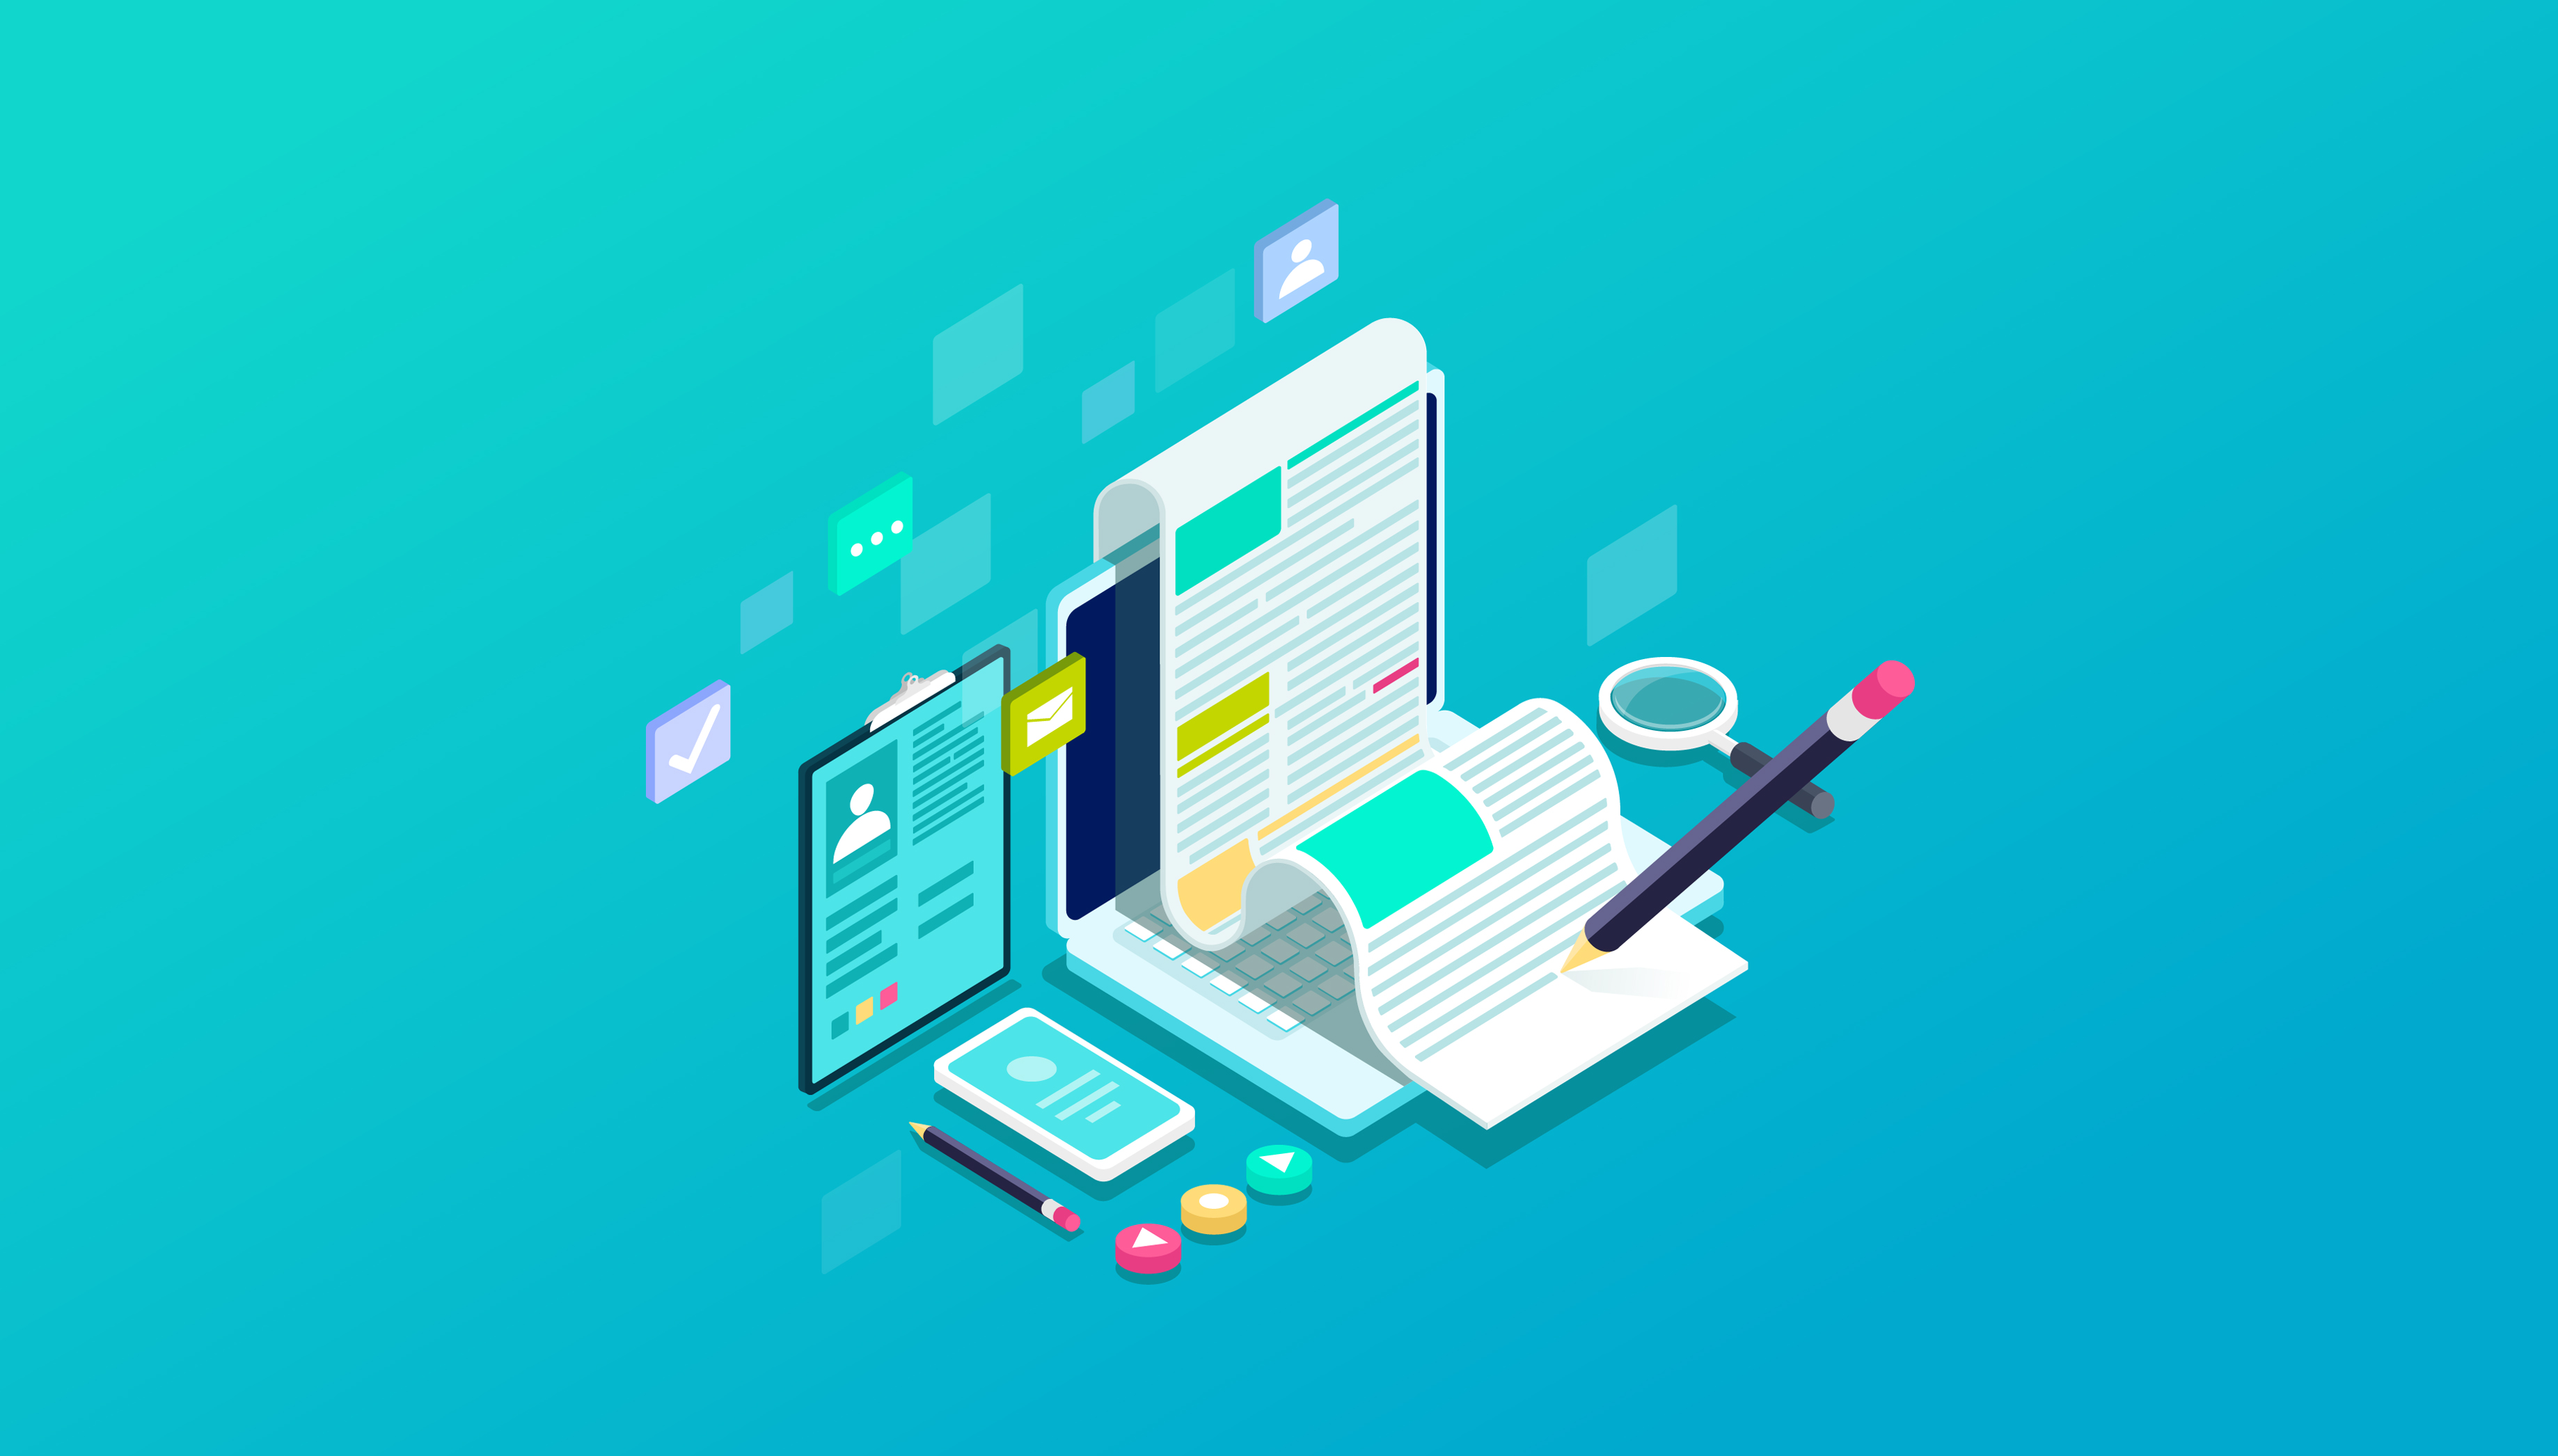 https://testsigma.com/blog/wp-content/uploads/What-are-the-KPIs-of-Software-Testing-and-QA0A-1200x674.jpg